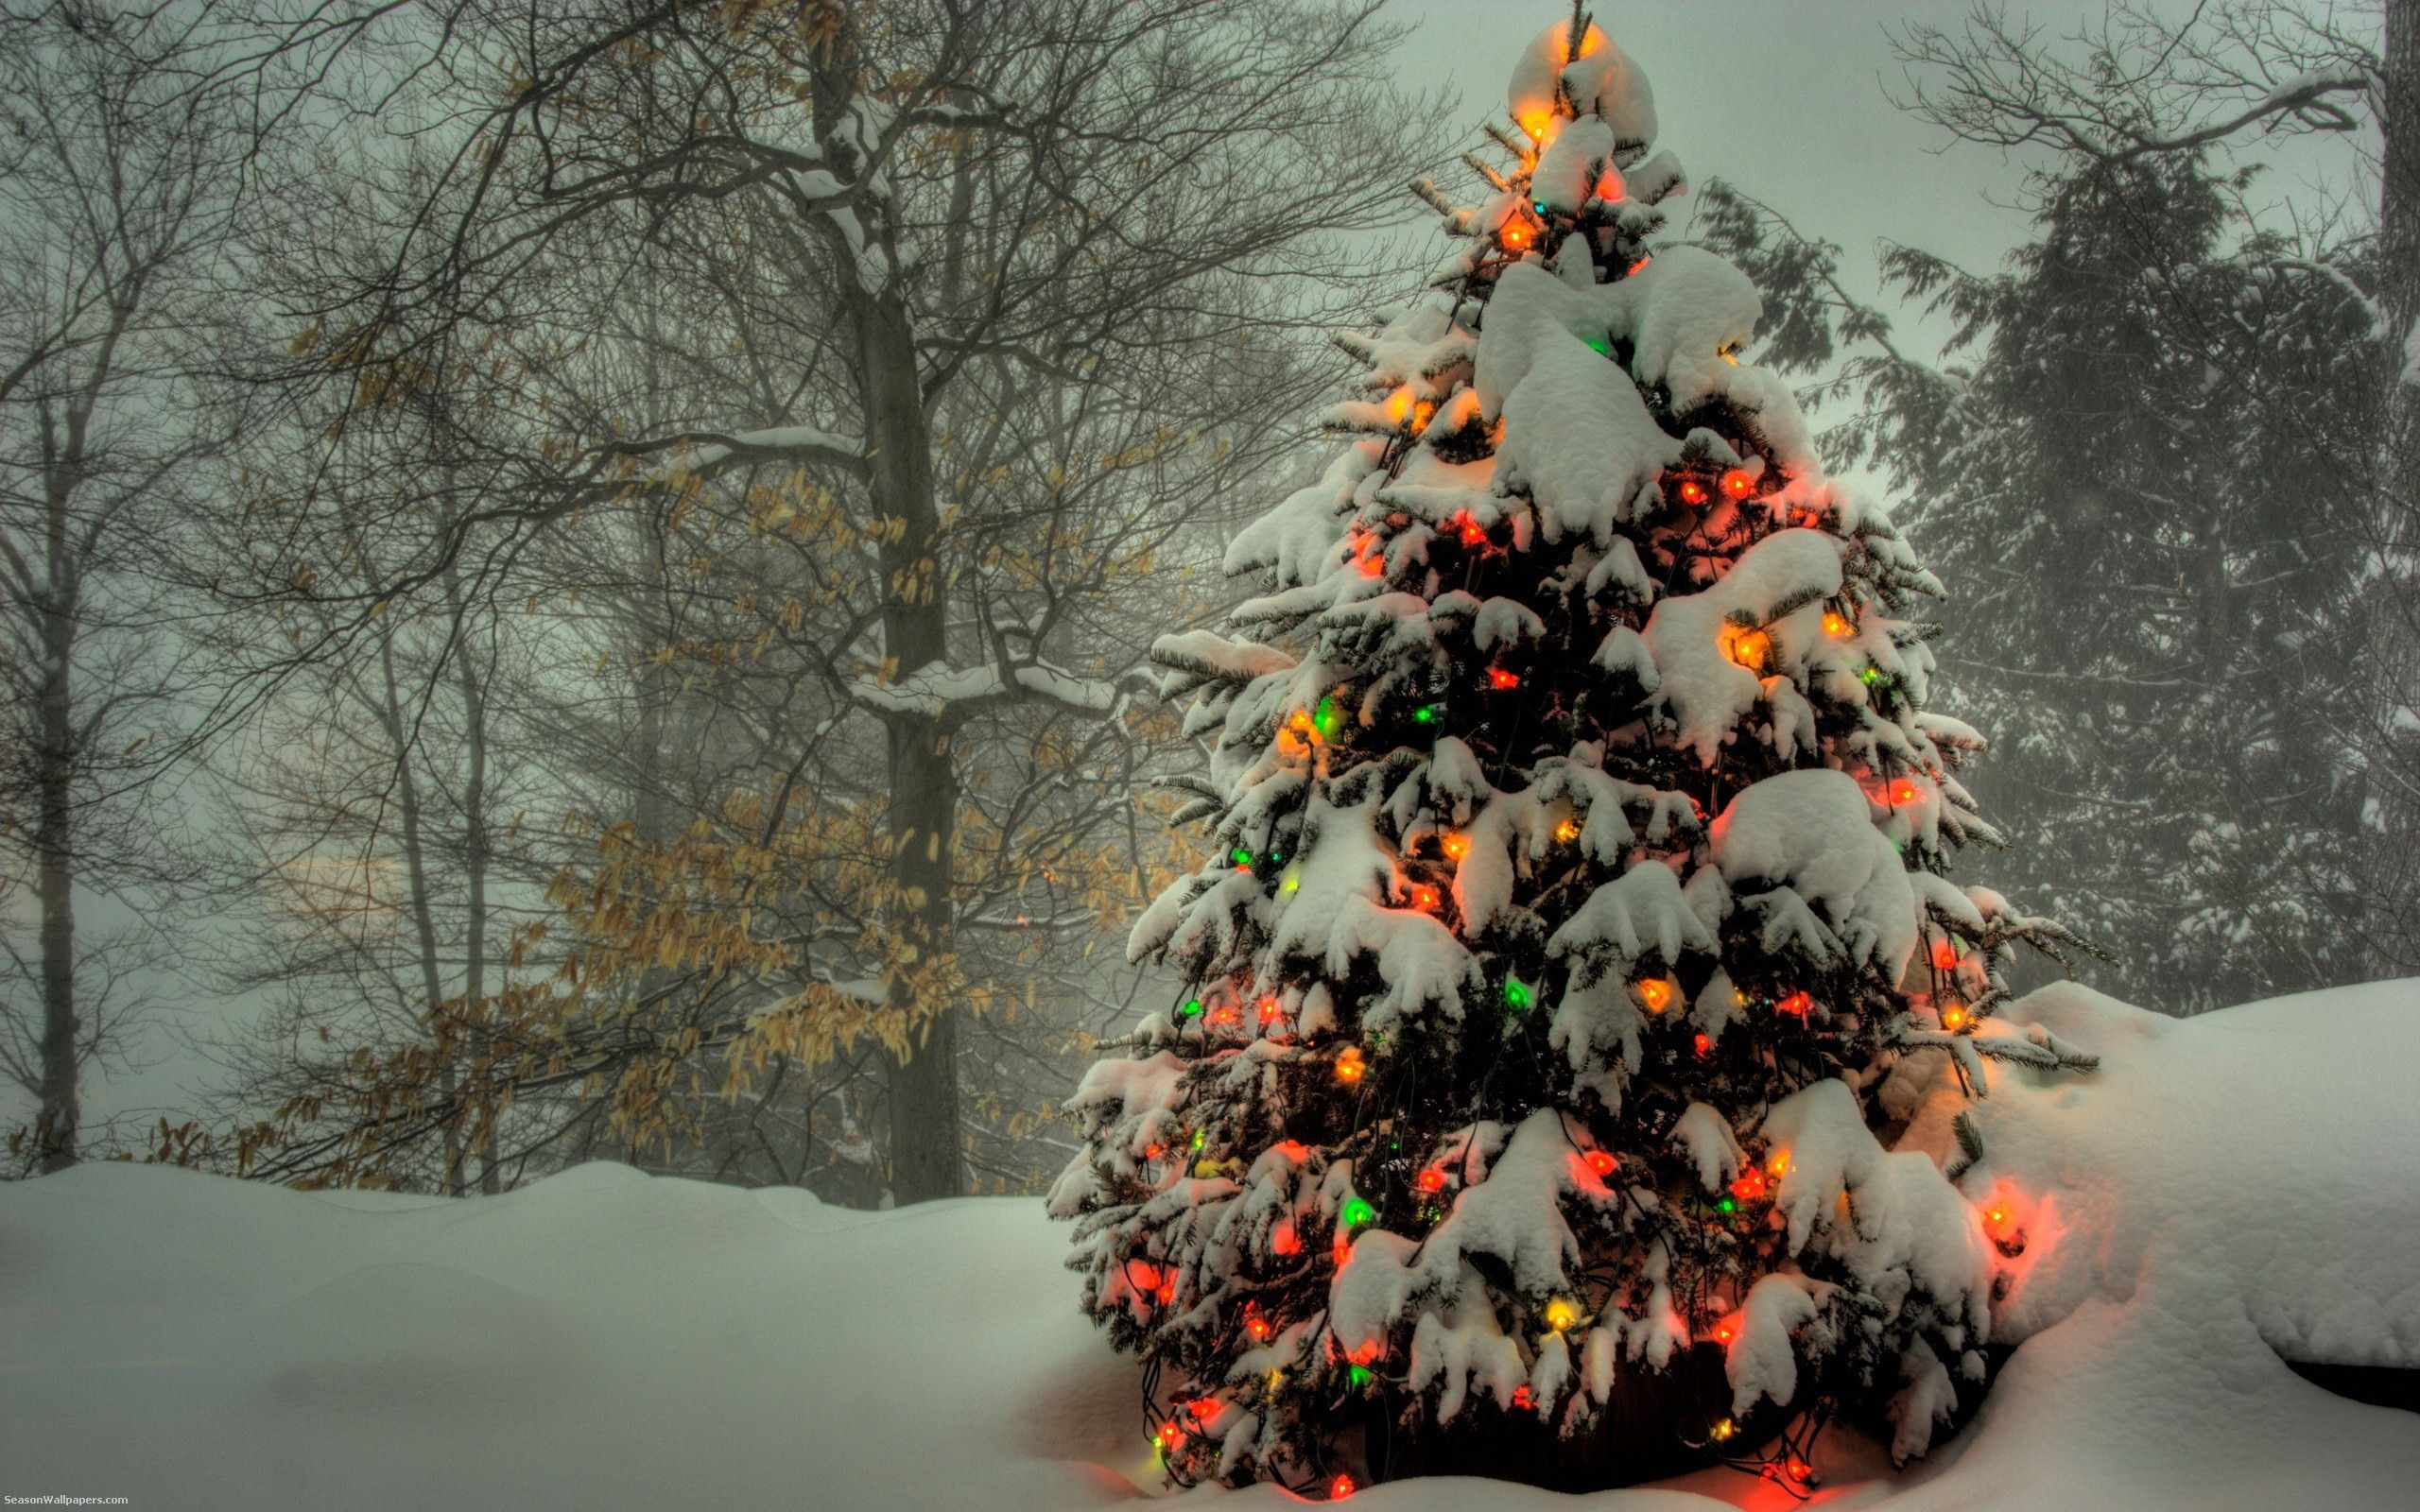 Wallpapers 2560x1600 a beautiful christmas tree covered